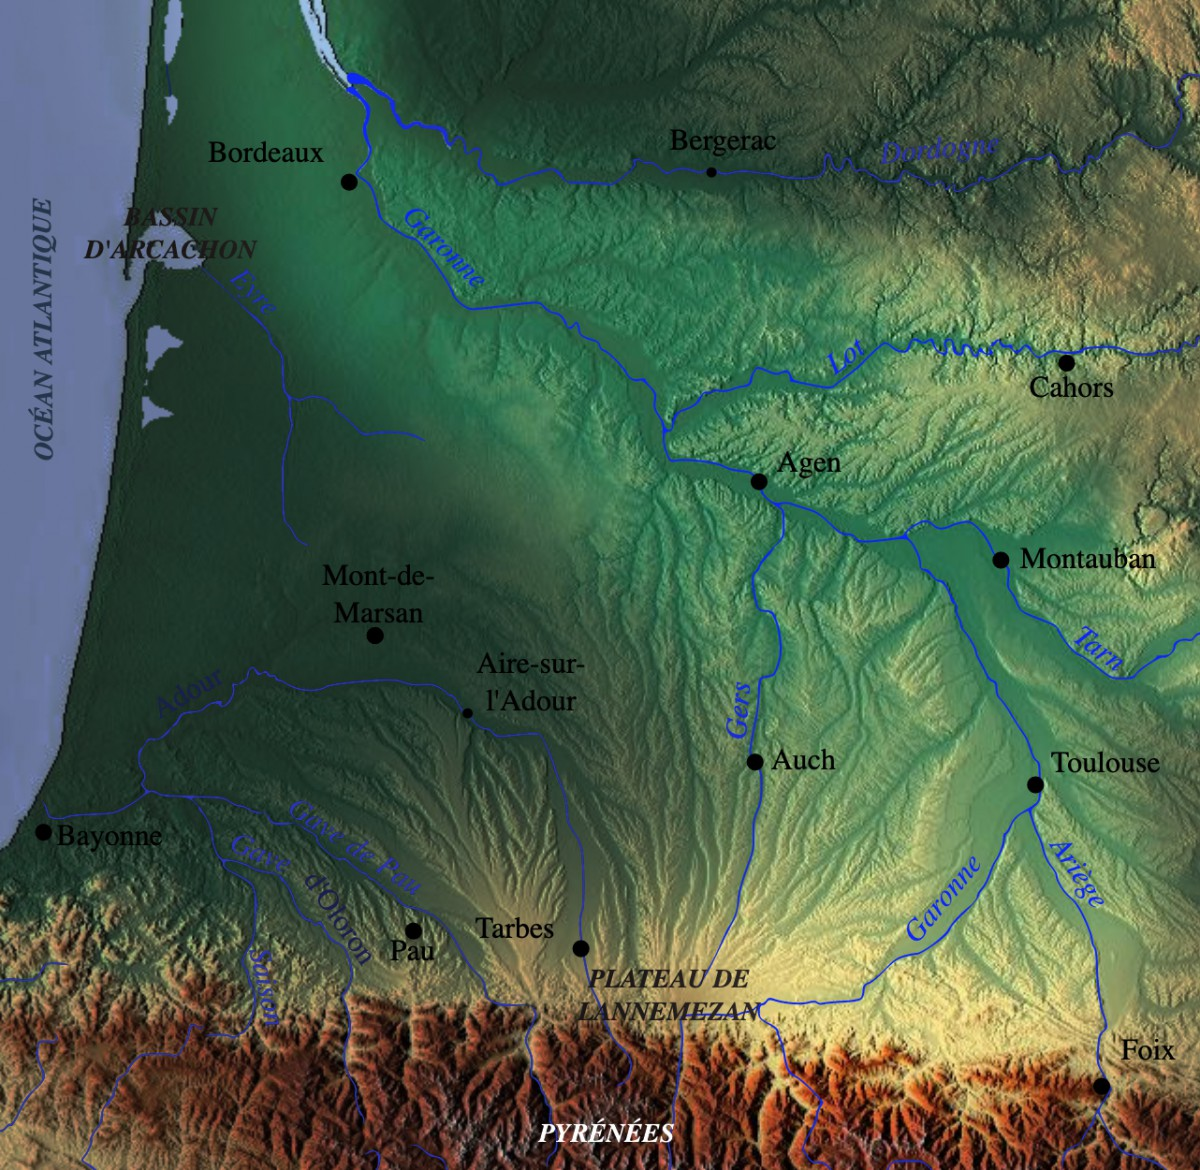 Garonne Watershed © Pethrus - licence [CC BY-SA 3.0] from Wikimedia Commons